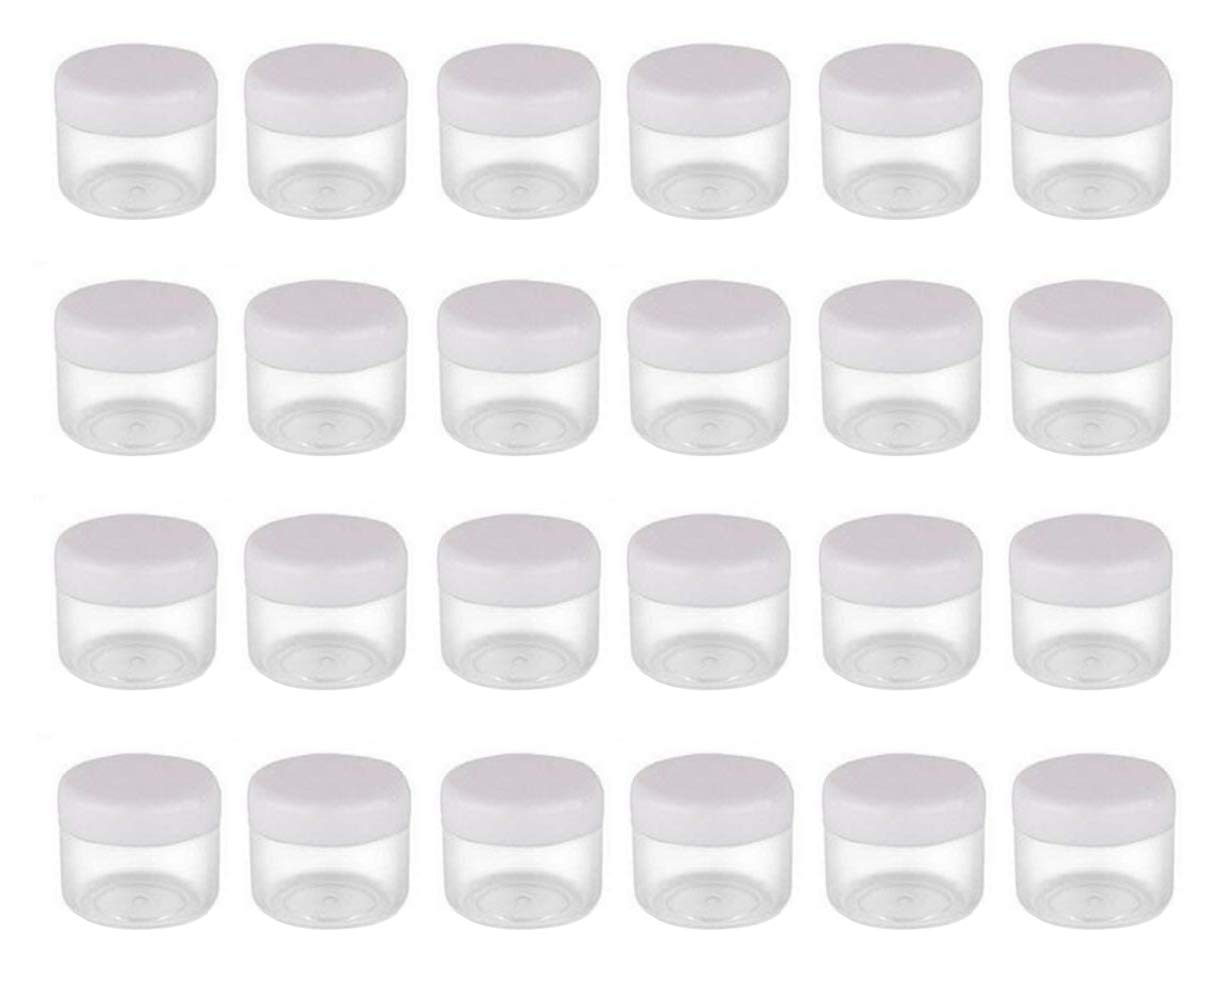 50PCS 20G ML 0.7oz Empty Refill Clear Plastic Sample Cosmetic Bottle Jar Pots Eyshadow Packing Storage Container With White Screw Lid for Travel Make Up Cream Lotion Nails Powder Gems Beads Jewelry